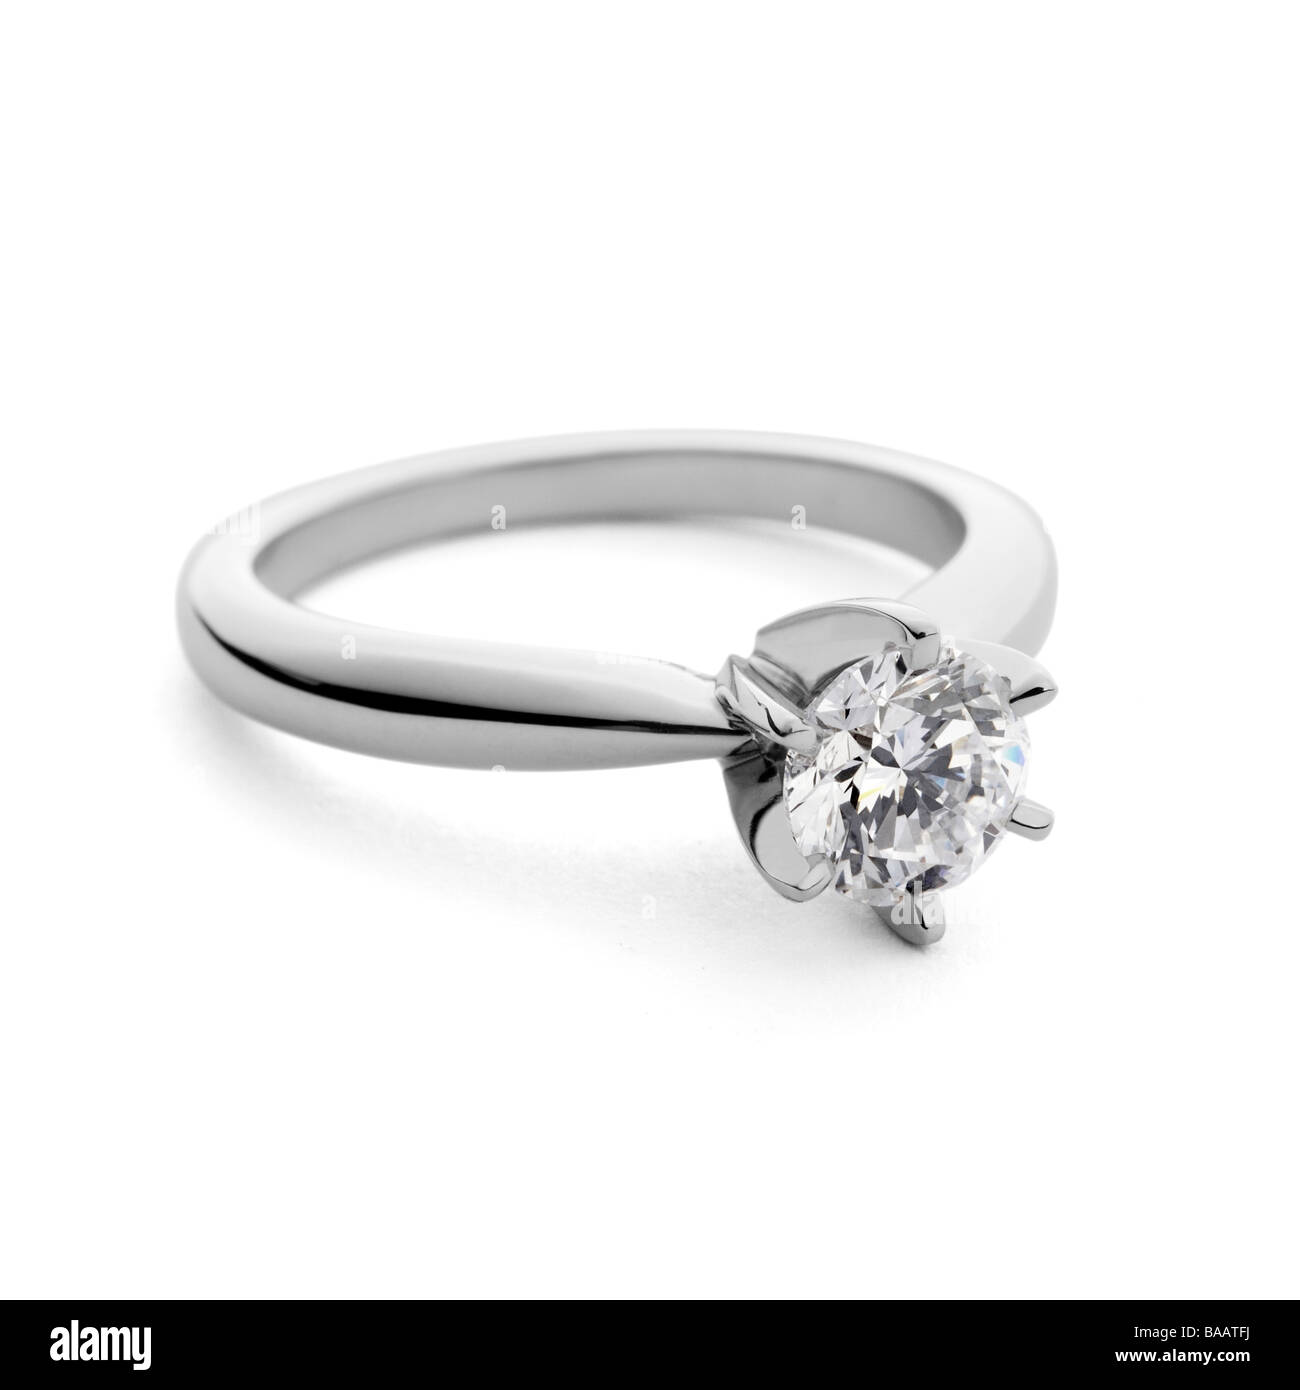 Diamond solitaire engagement ring - Stock Image